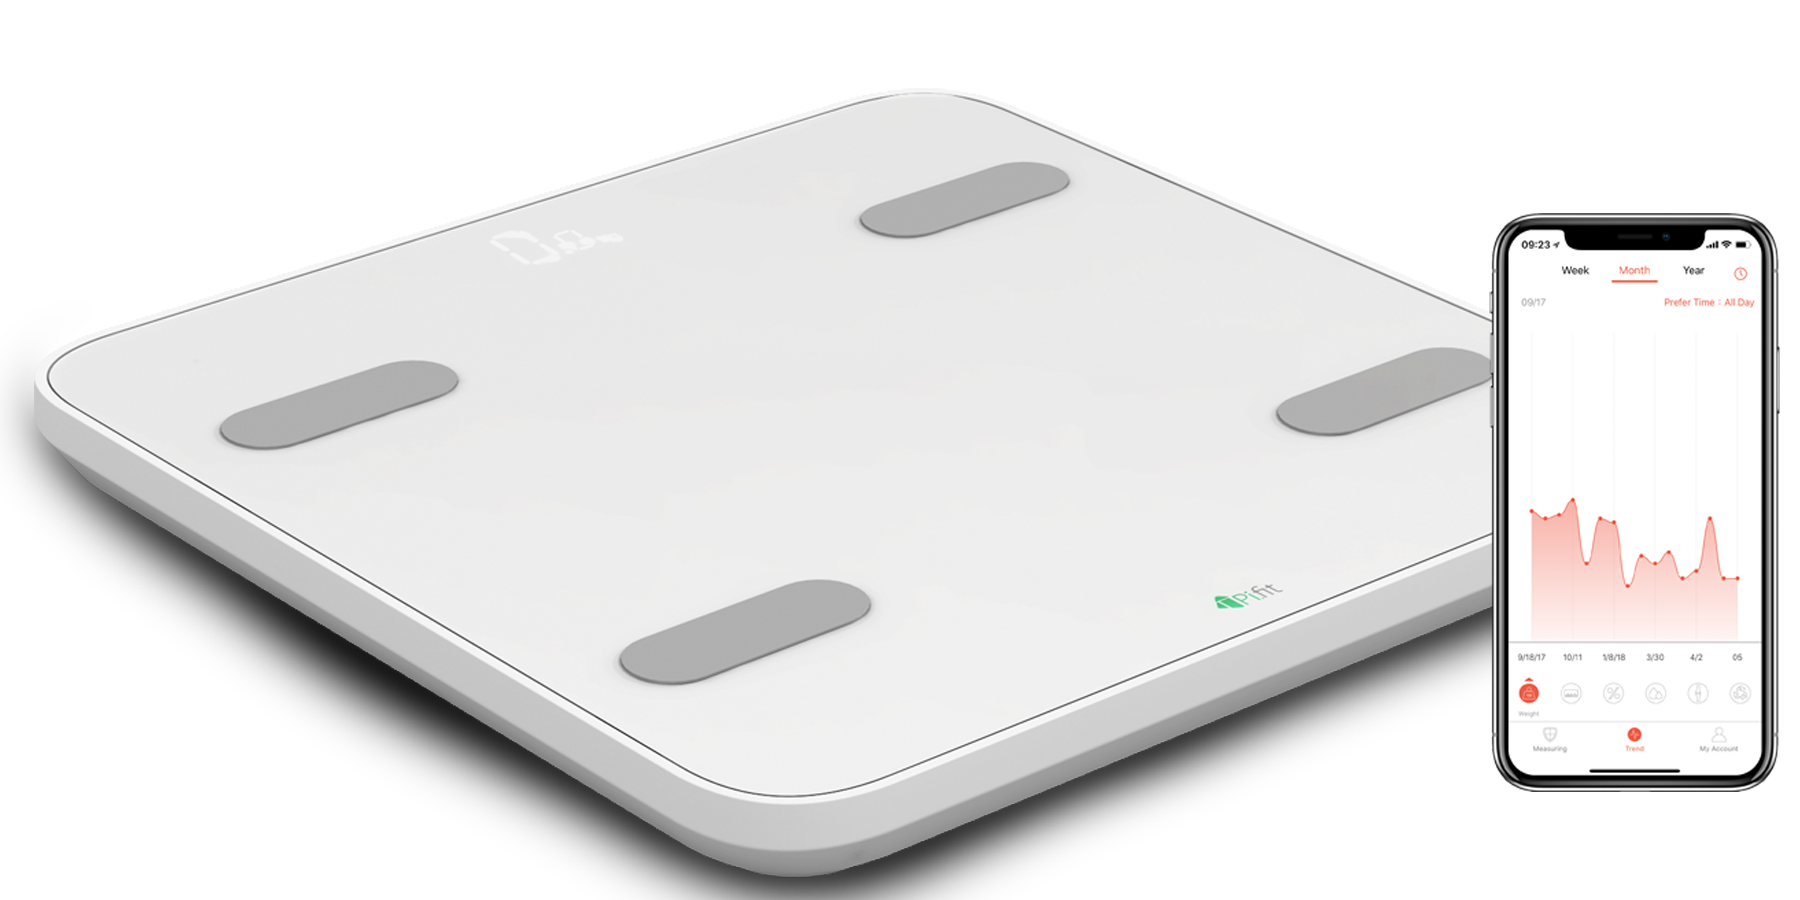 PiFit Smart Body Fat Scale - Smart weighing technology